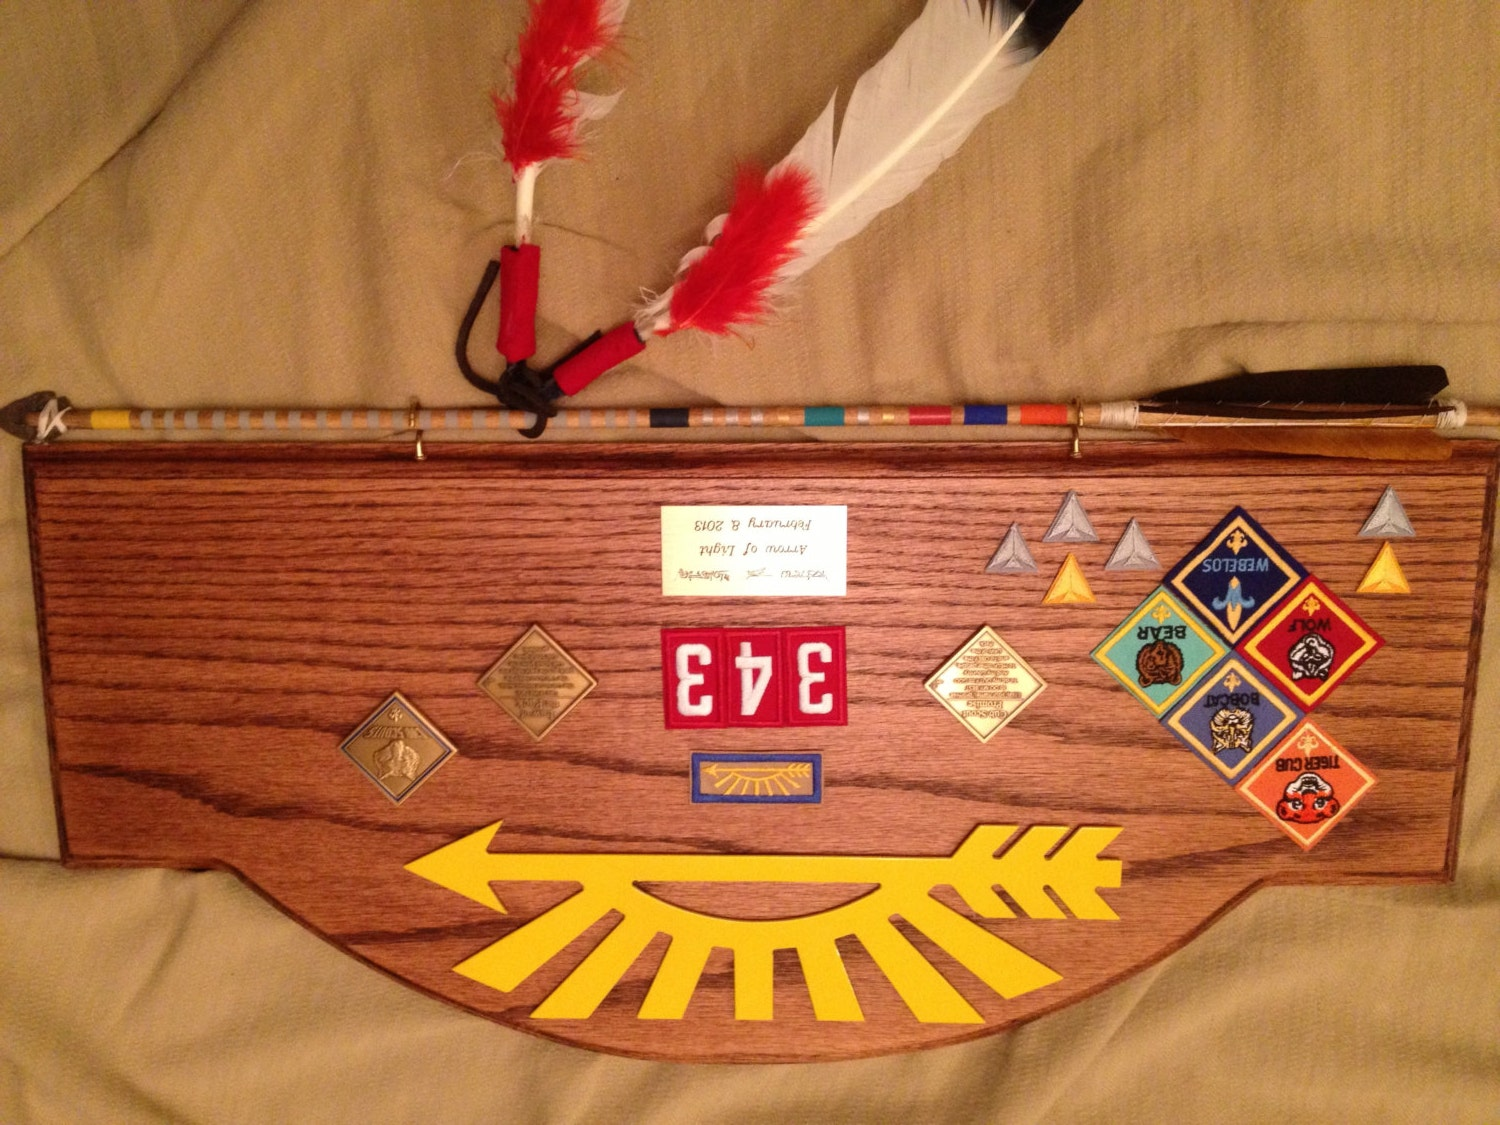 cub scout arrow of light award plaque 3 by headbergwoodcrafts. Black Bedroom Furniture Sets. Home Design Ideas